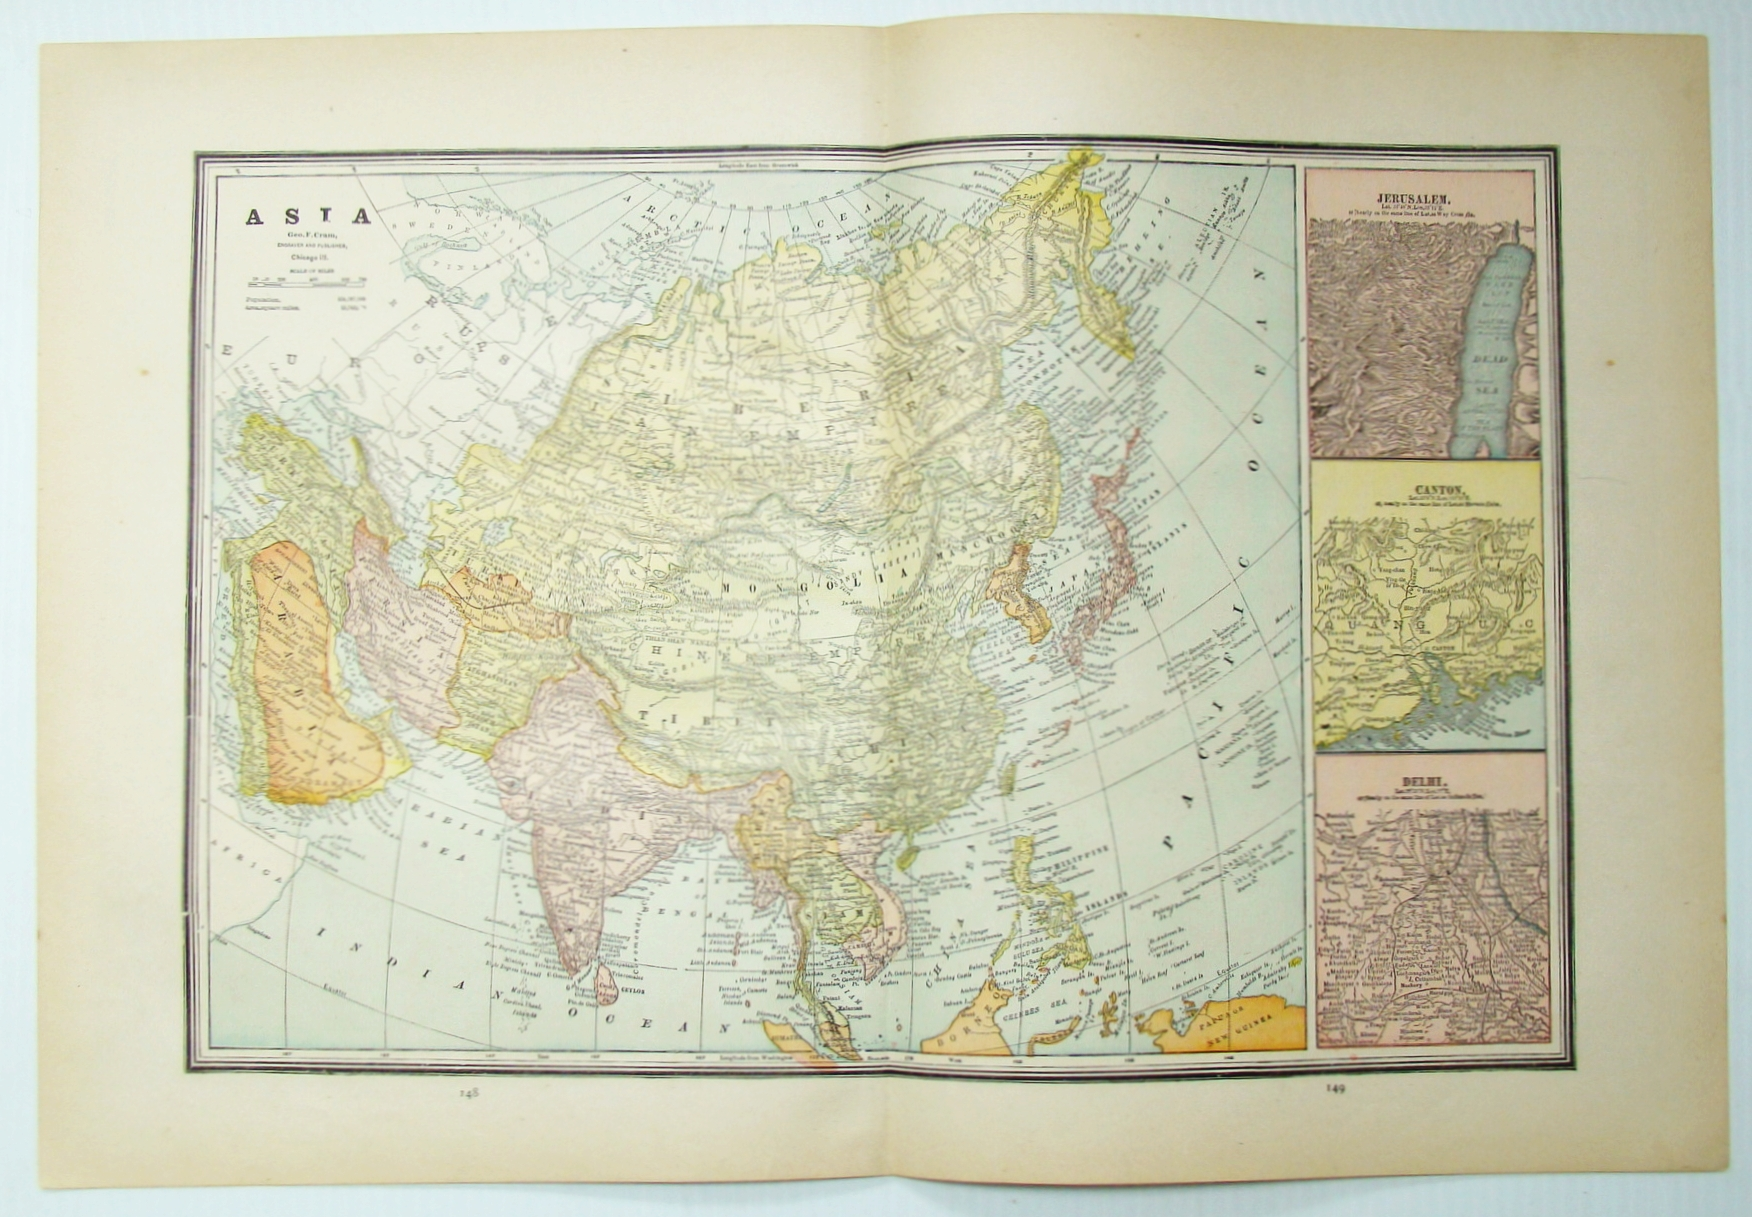 1889 Color Map of Asia, Including Expanded ... on map of asia kathmandu, map of asia kabul, map of asia mesopotamia, map of asia naypyidaw, map of asia fertile crescent, map of asia baghdad, map of asia dead sea, map of asia zagros mountains, map of asia philippines, map of asia gobi desert, map of asia palestine, map of asia jordan, map of asia new delhi, map of asia gaza strip, map of asia india, map of asia tehran, map of asia russia, map of asia islamabad, map of asia ganges river, map of asia karachi,